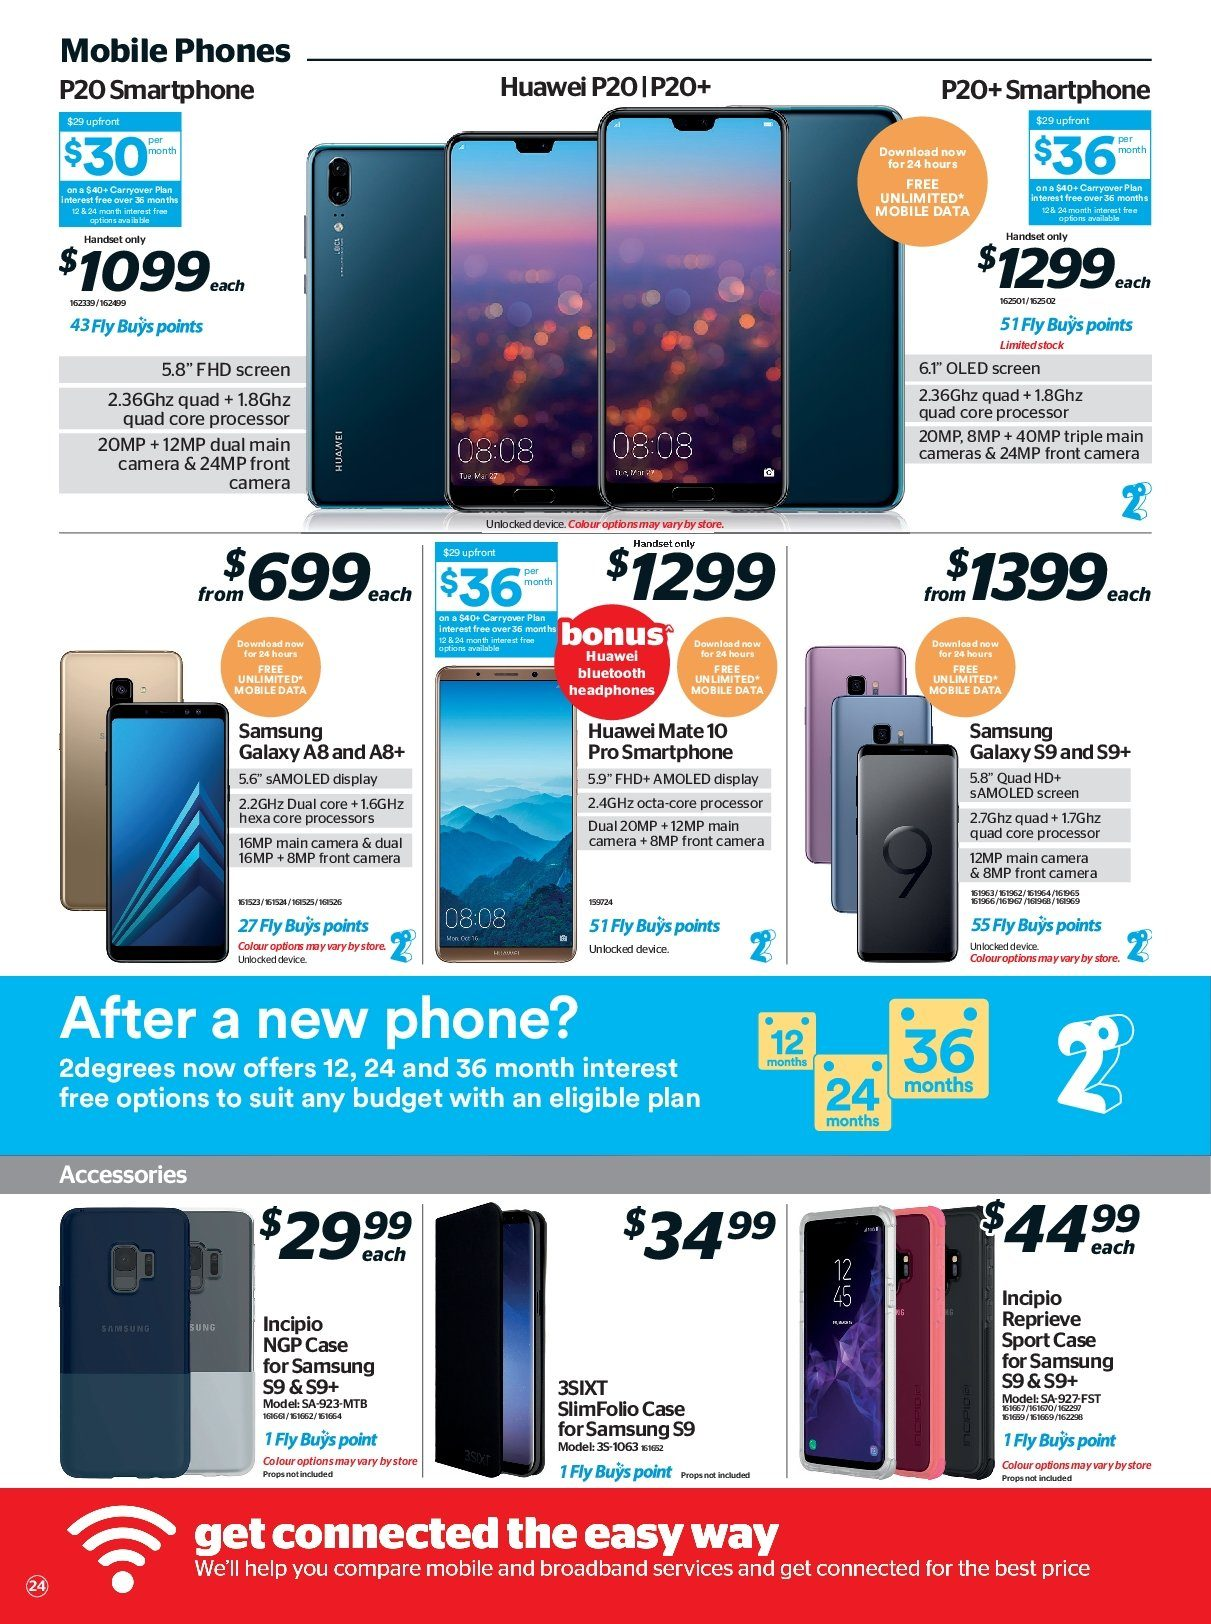 Noel Leeming mailer - 16.05.2018 - 29.05.2018 - Sales products - camera, case, galaxy, mate, samsung, huawei, processor, smartphone, samsung s9, headphones. Page 24.